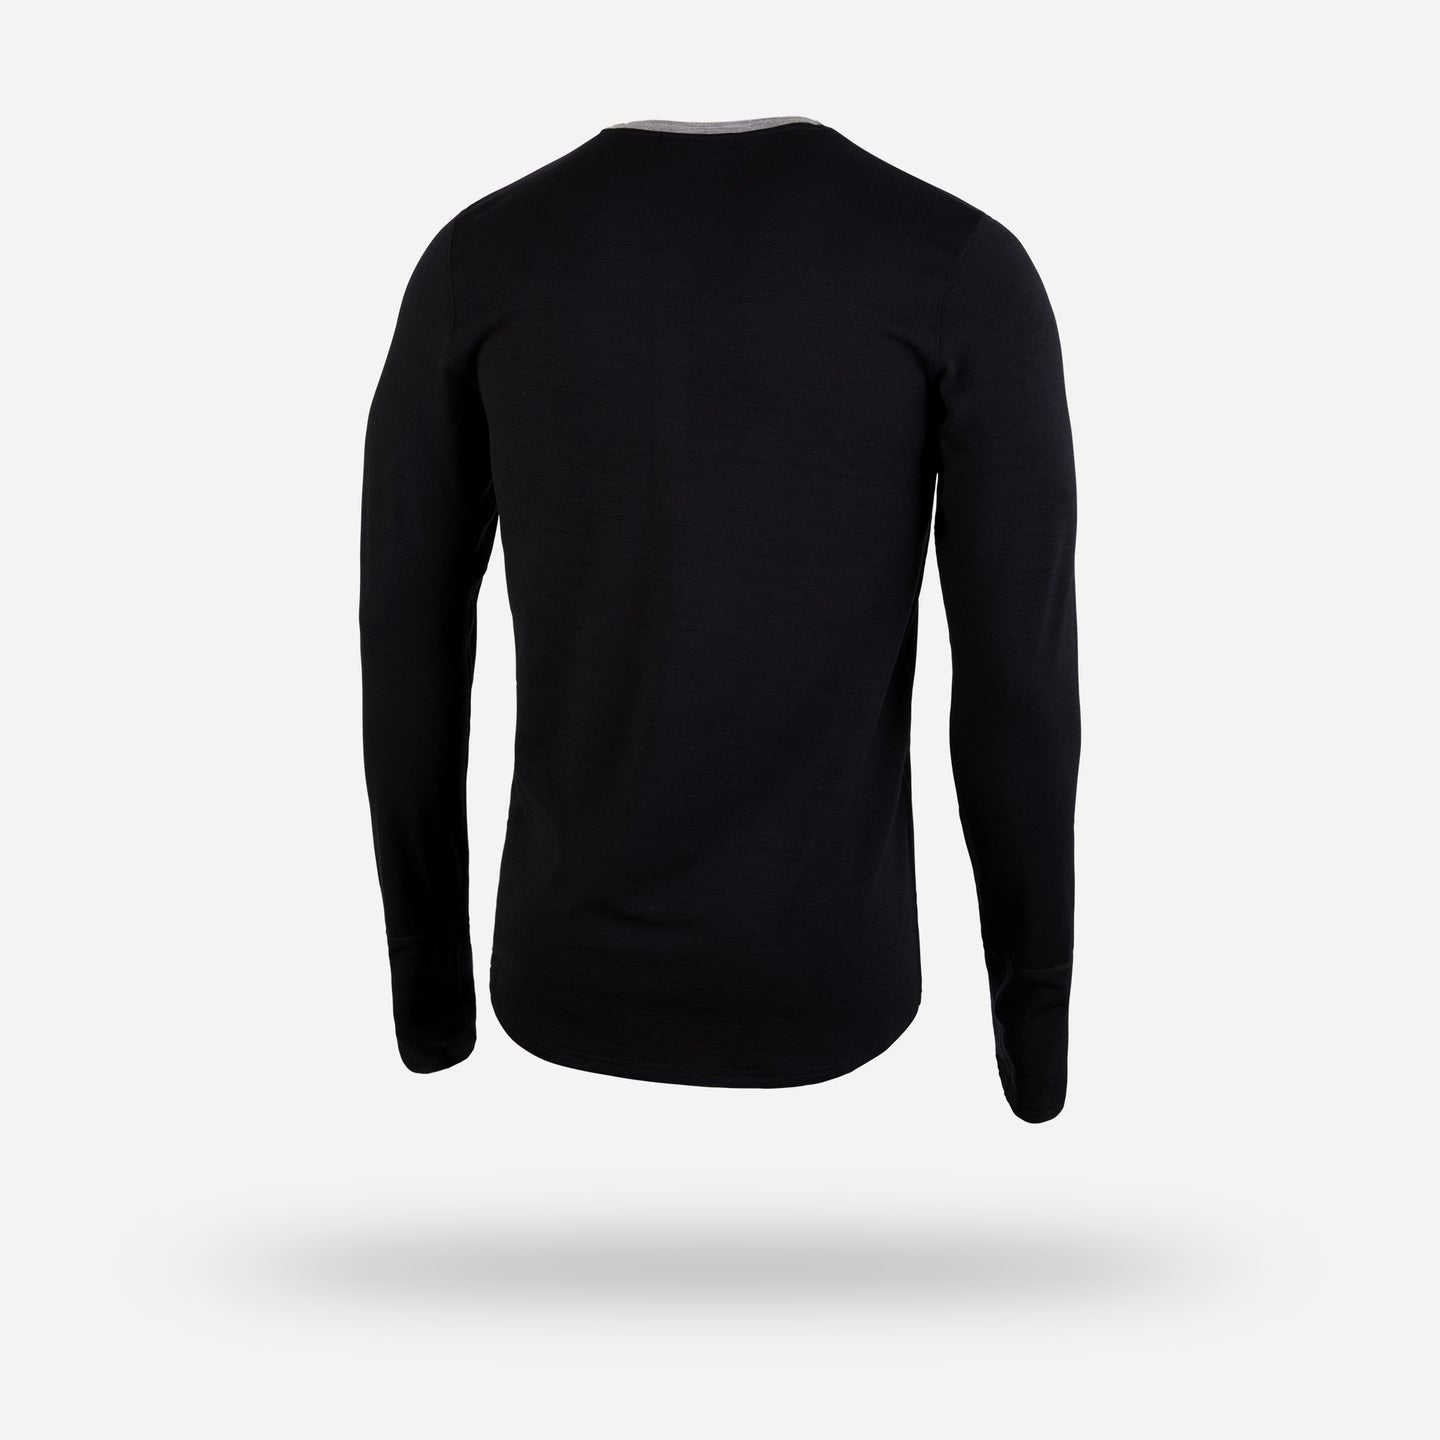 MERINO WOOL LONG SLEEVE BASE LAYER: BLACK/BLACK